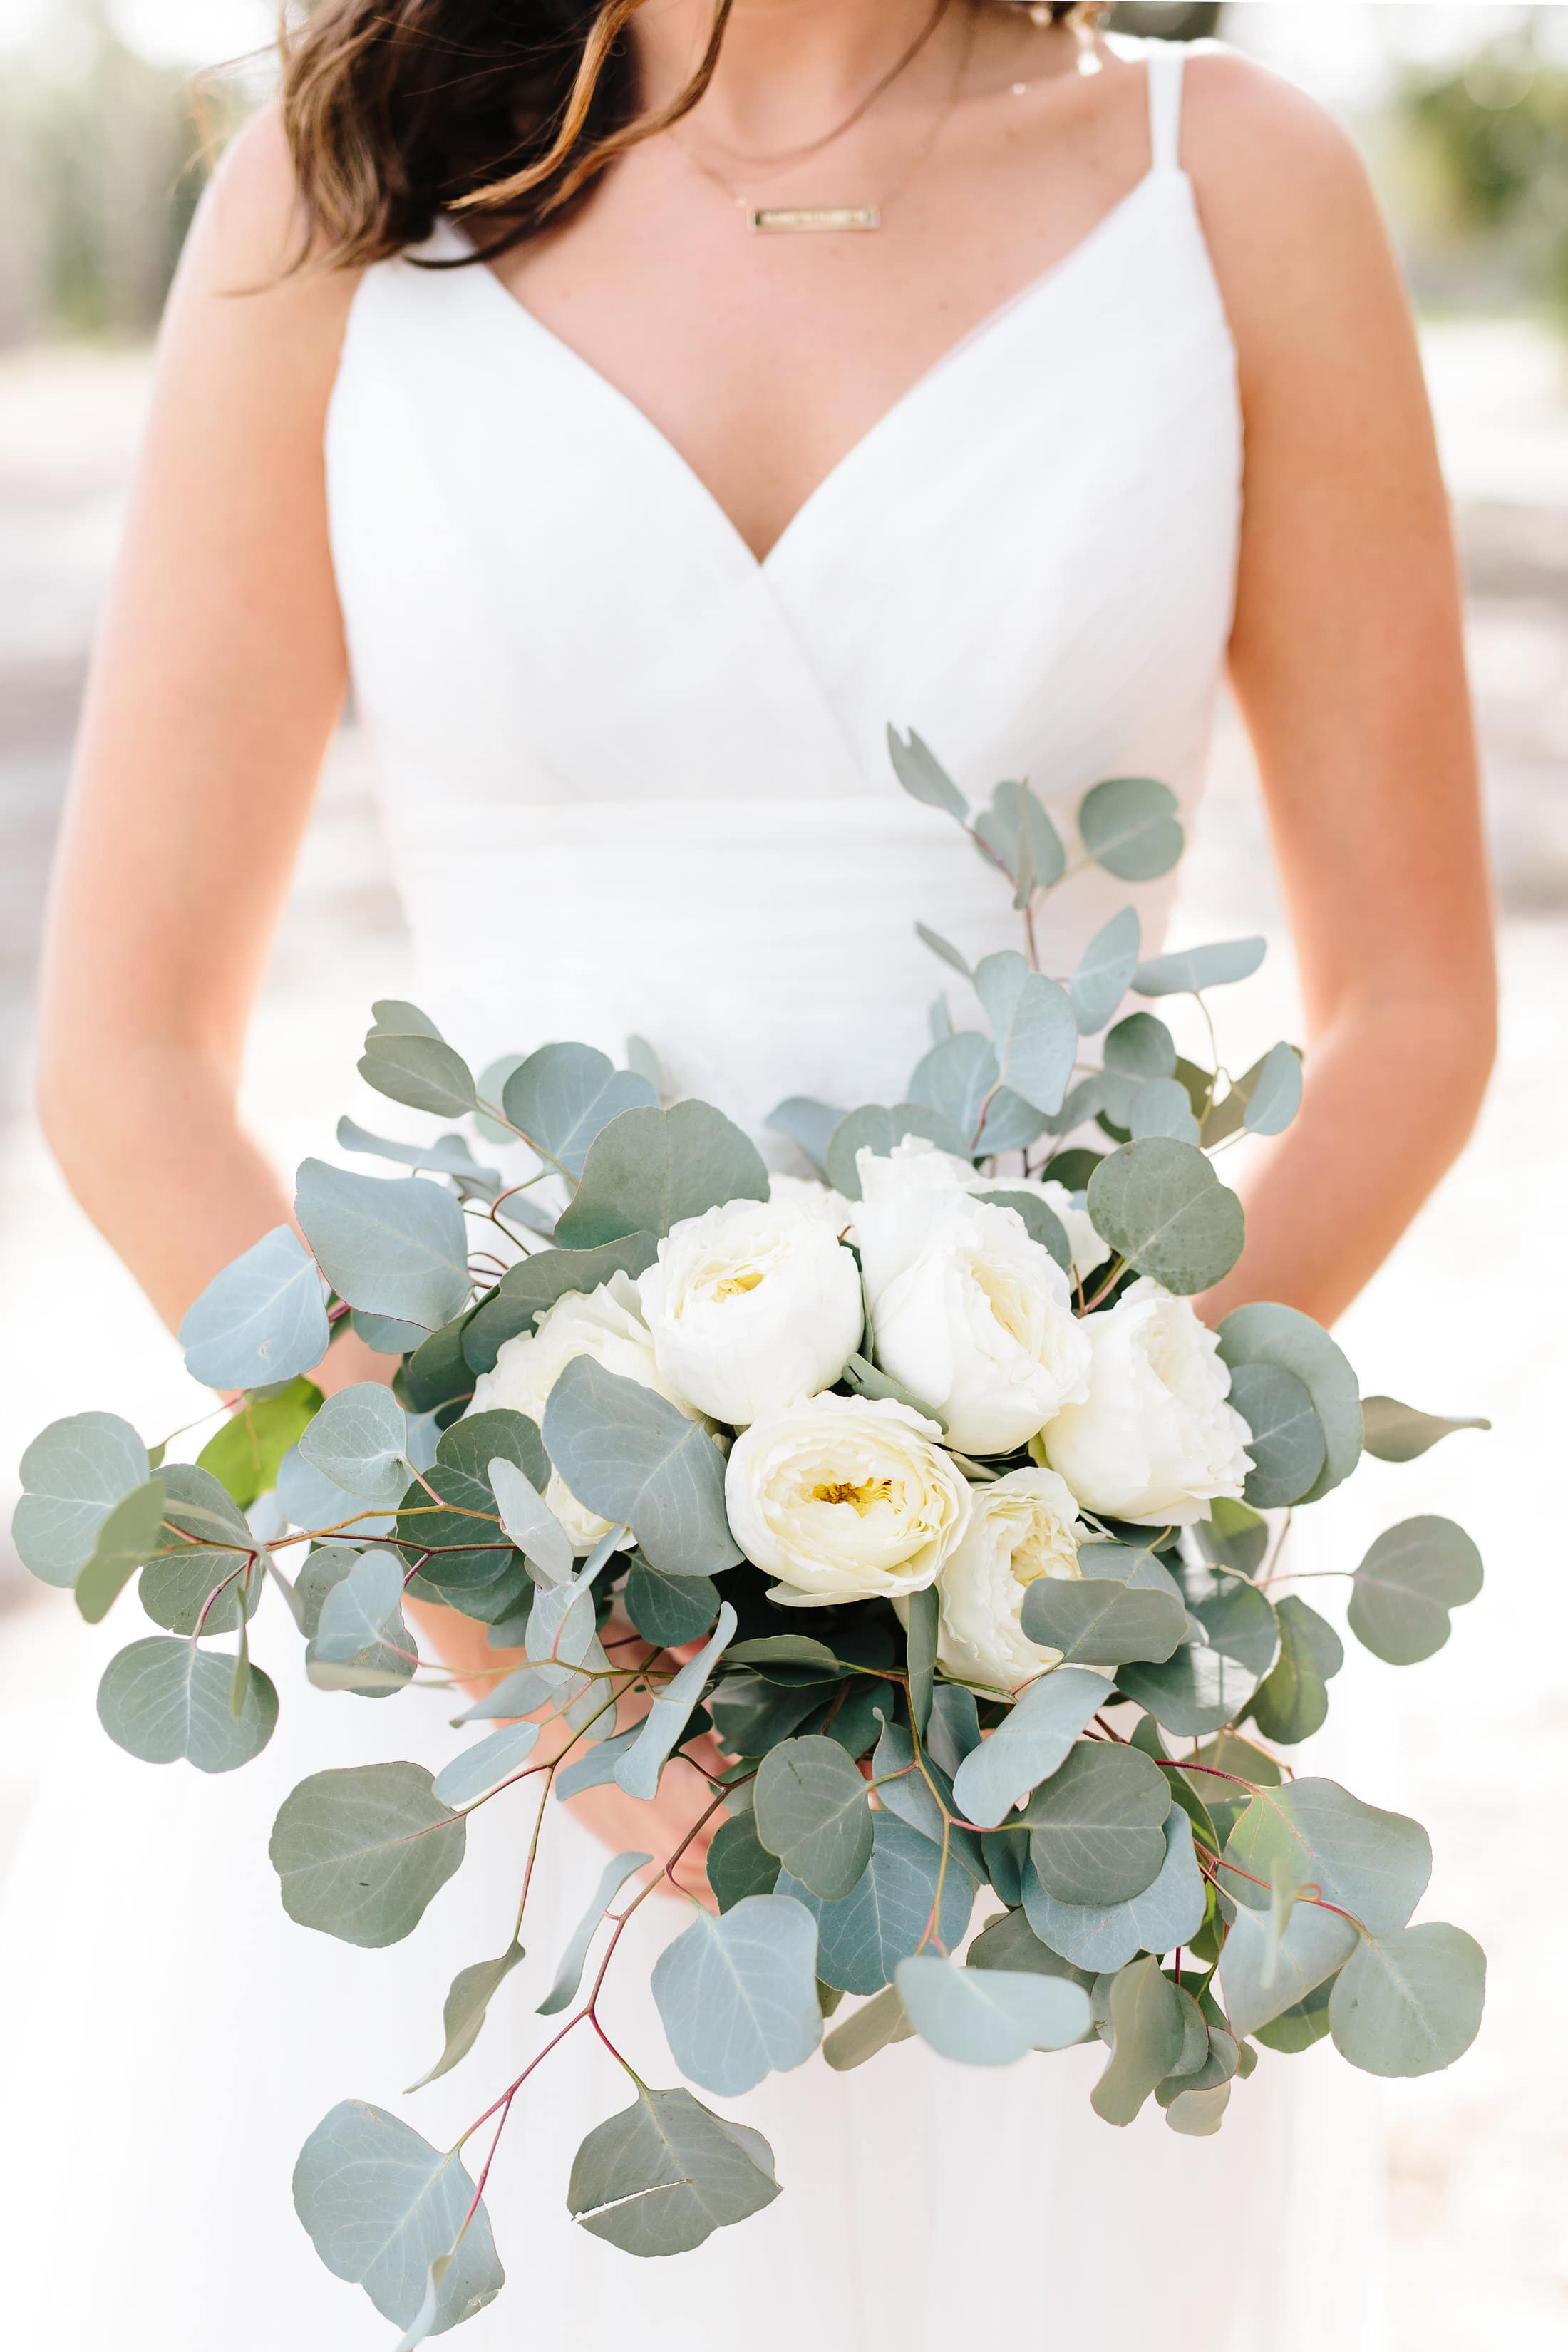 Whimsical Winter Wedding Bouquet with white roses and ecualyptus